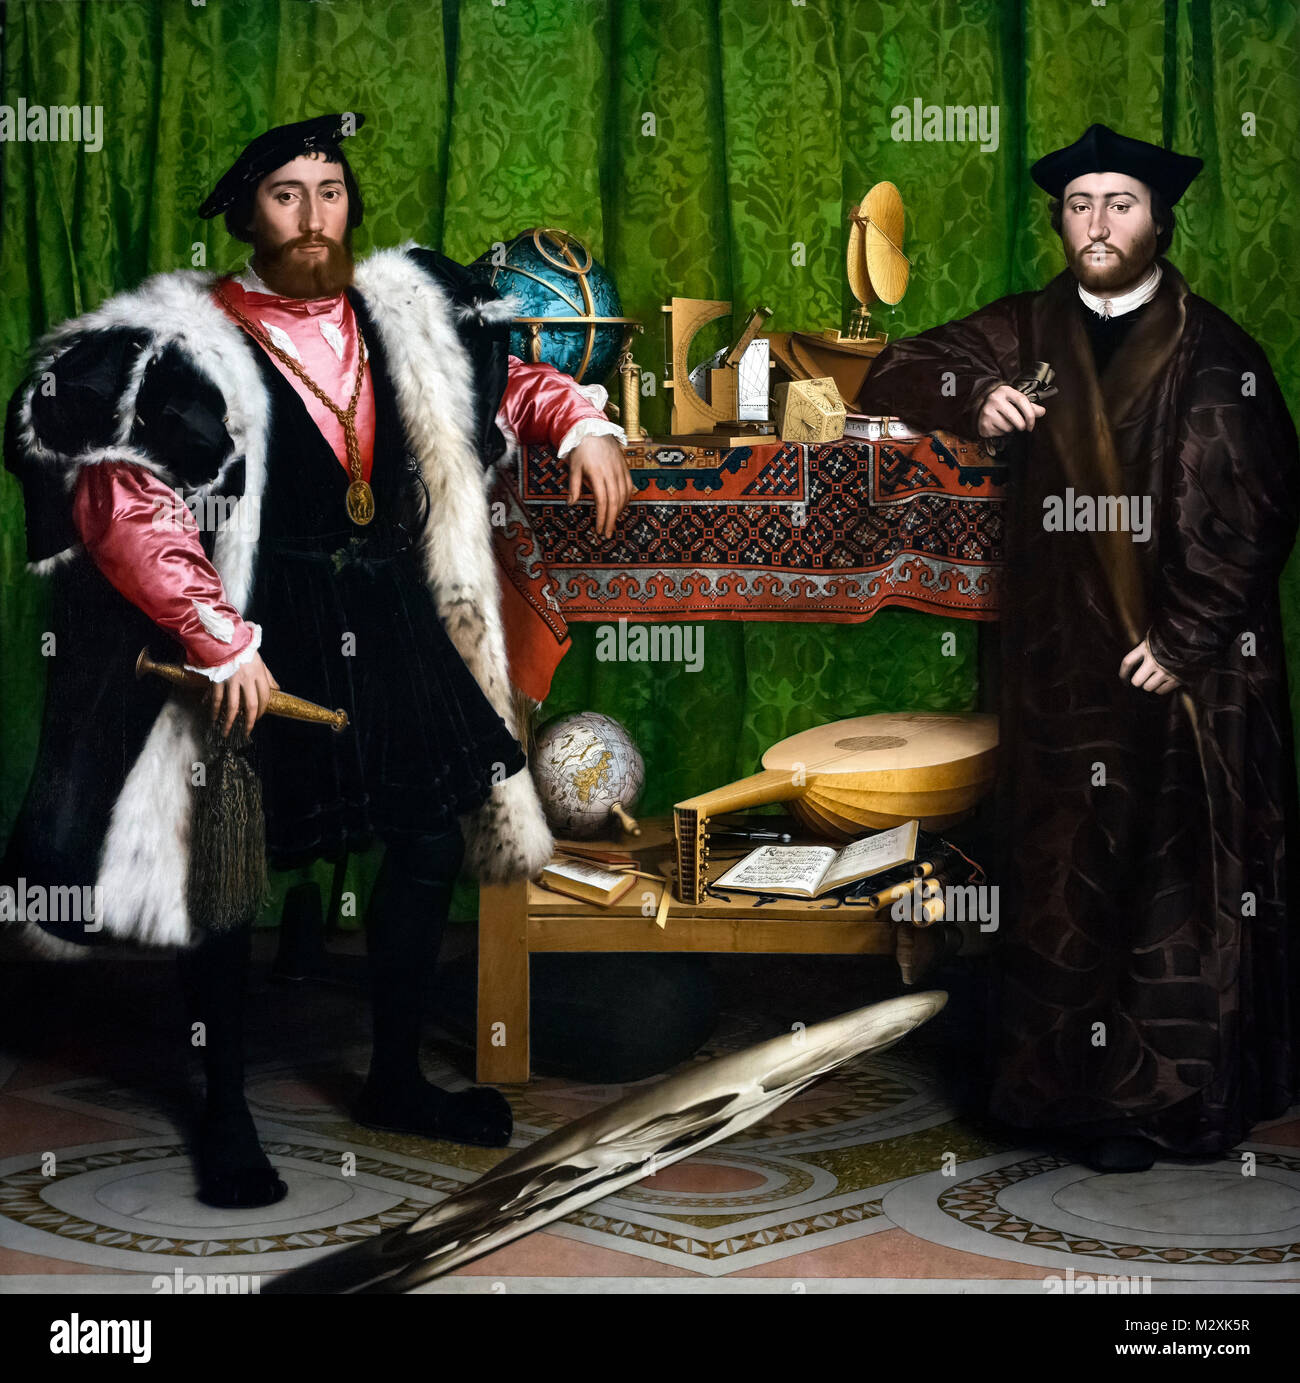 Holbein Ambassadors. Jean de Dinteville and Georges de Selve (The Ambassadors) by Hans Holbein the Younger (1497/8 - Stock Image